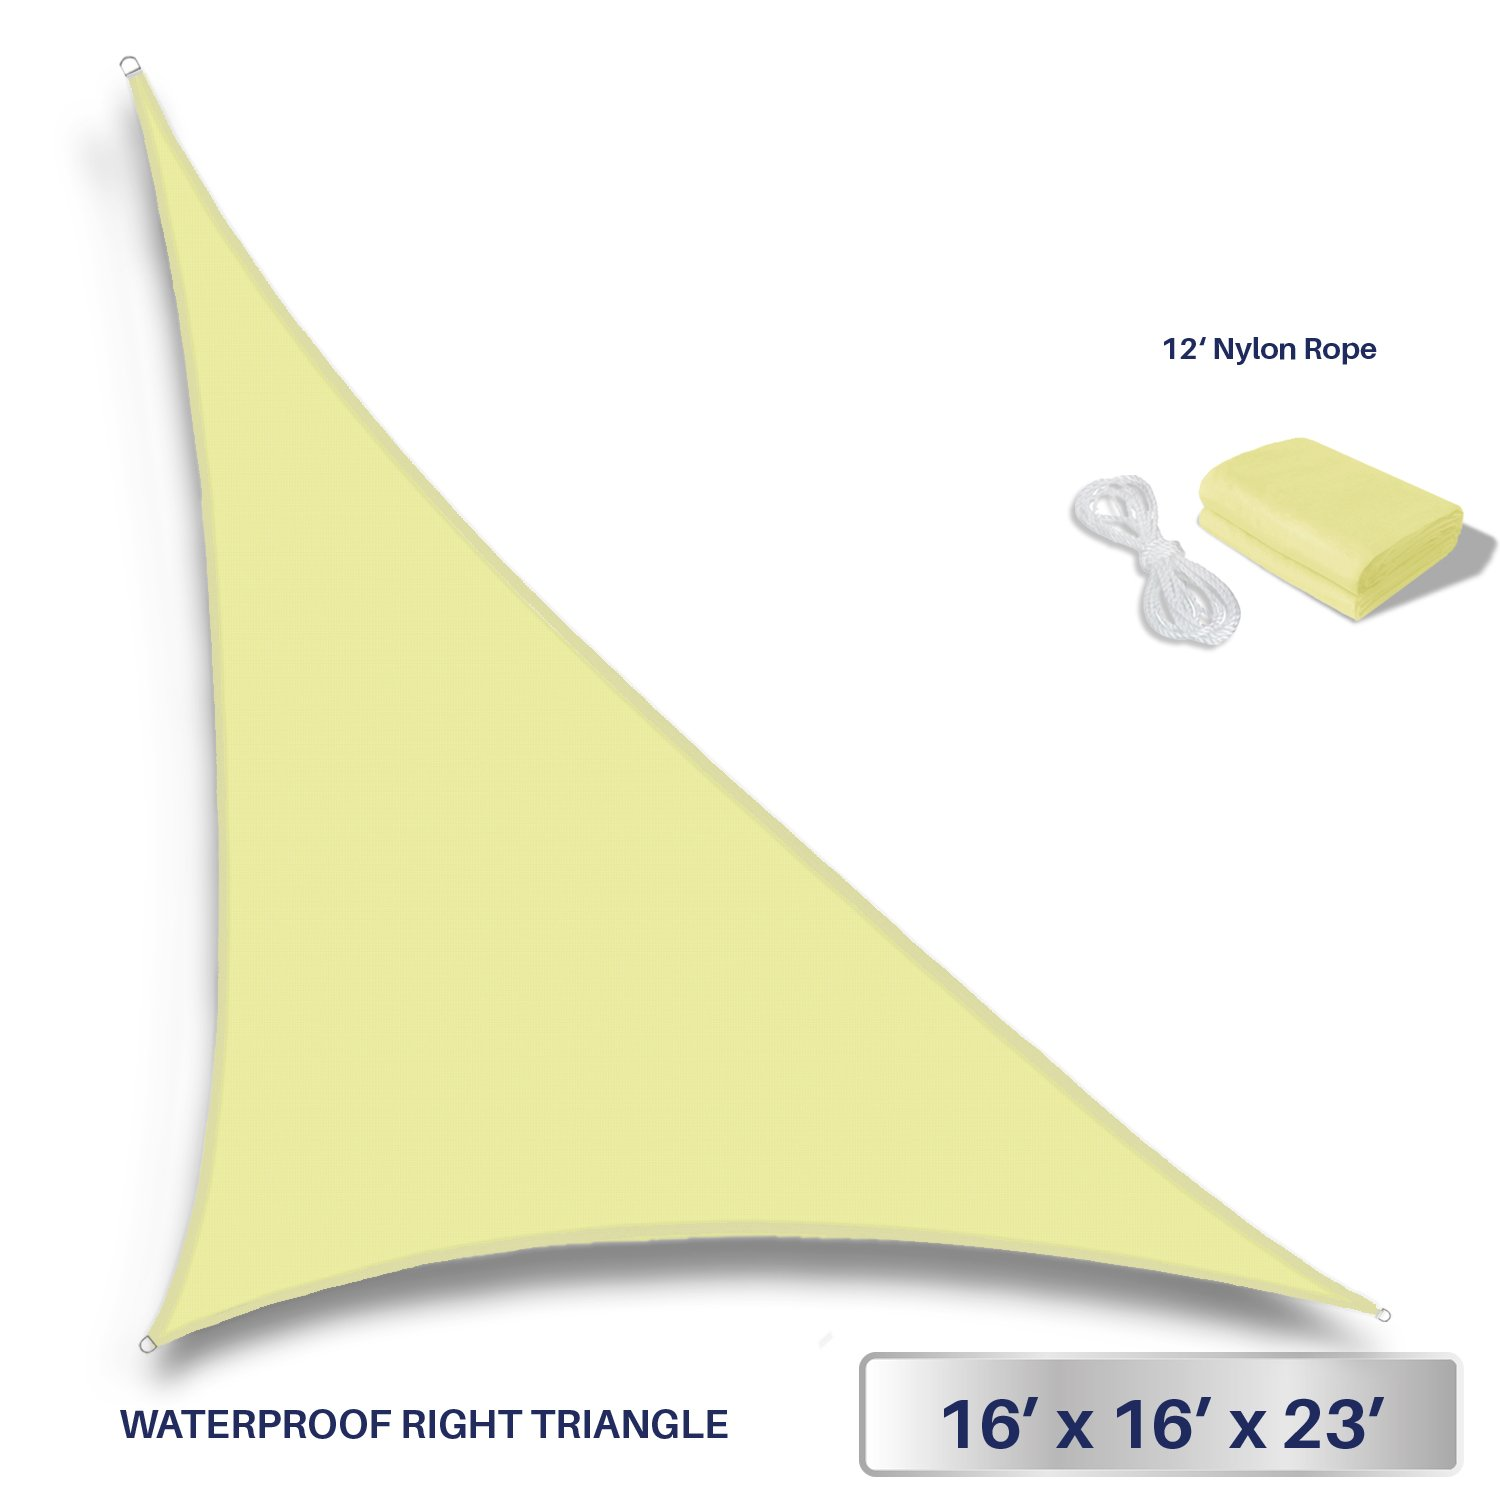 Windscreen4less Terylene Waterproof Sun Shade Sail UV Blocker Triangle Sunshade Patio Canopy Sail 16' x 16' x 22.6' in Color Canary Yellow